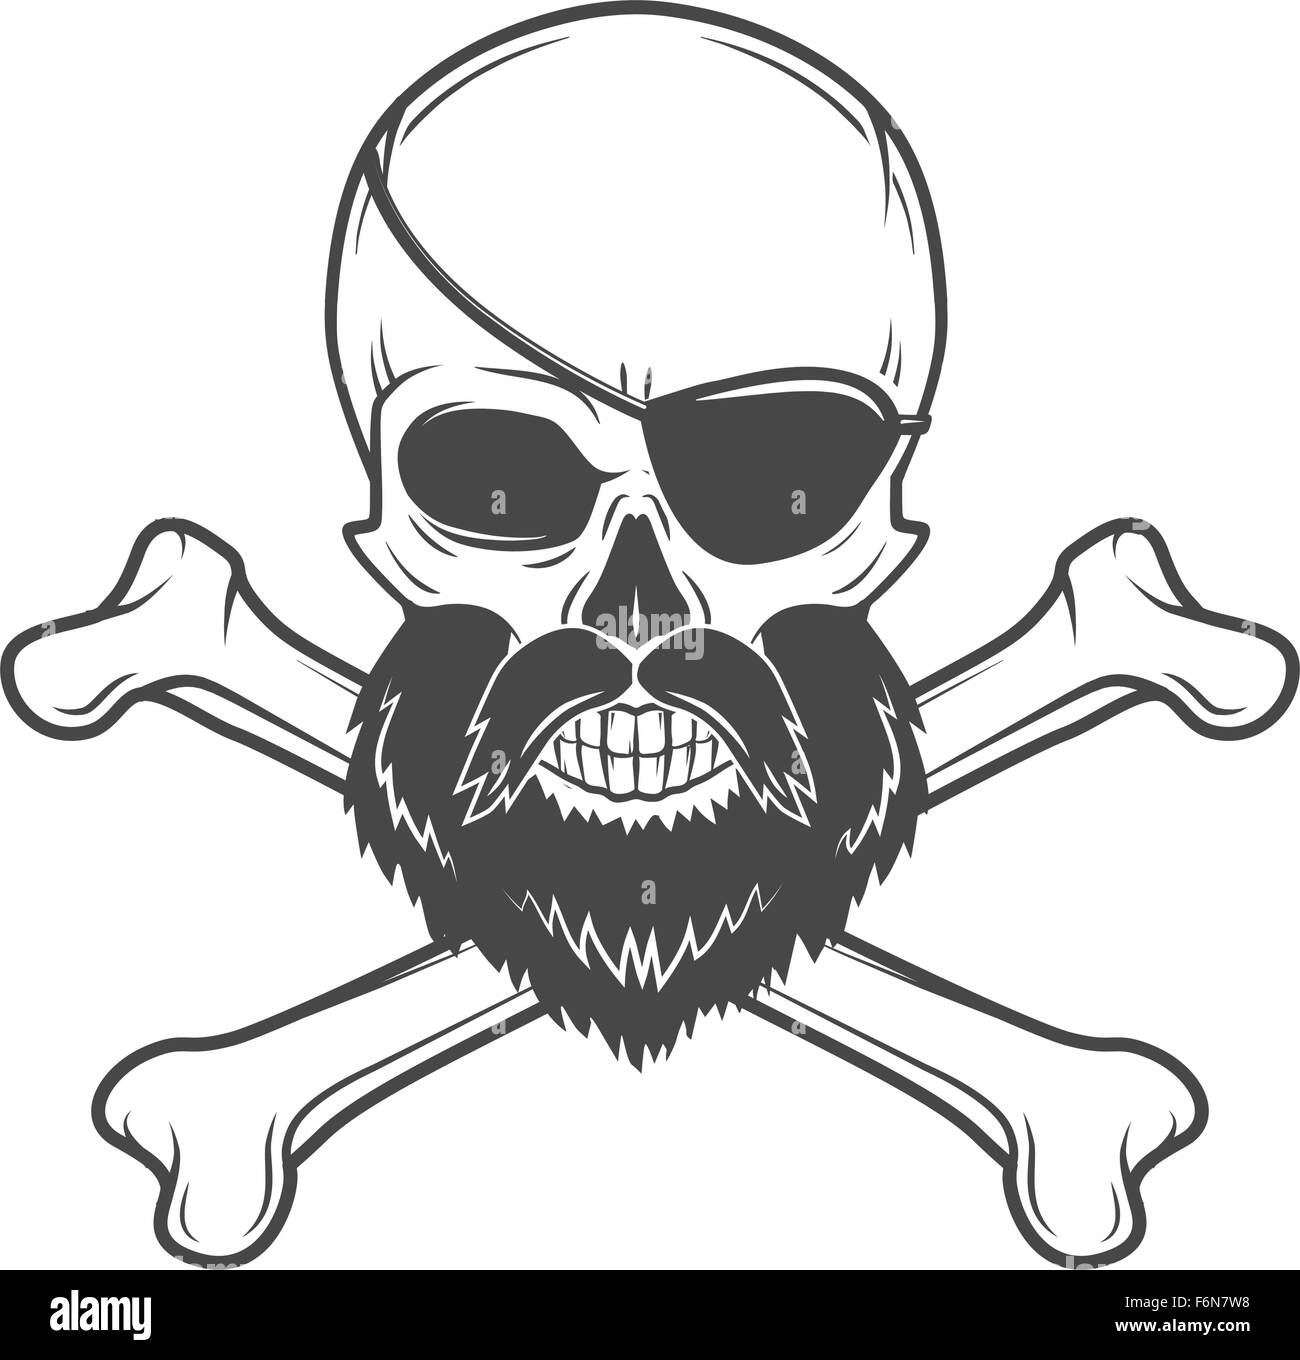 How To Filibuster >> Pirate skull with beard, eye patch and crossed bones vector. Edward Stock Vector Art ...